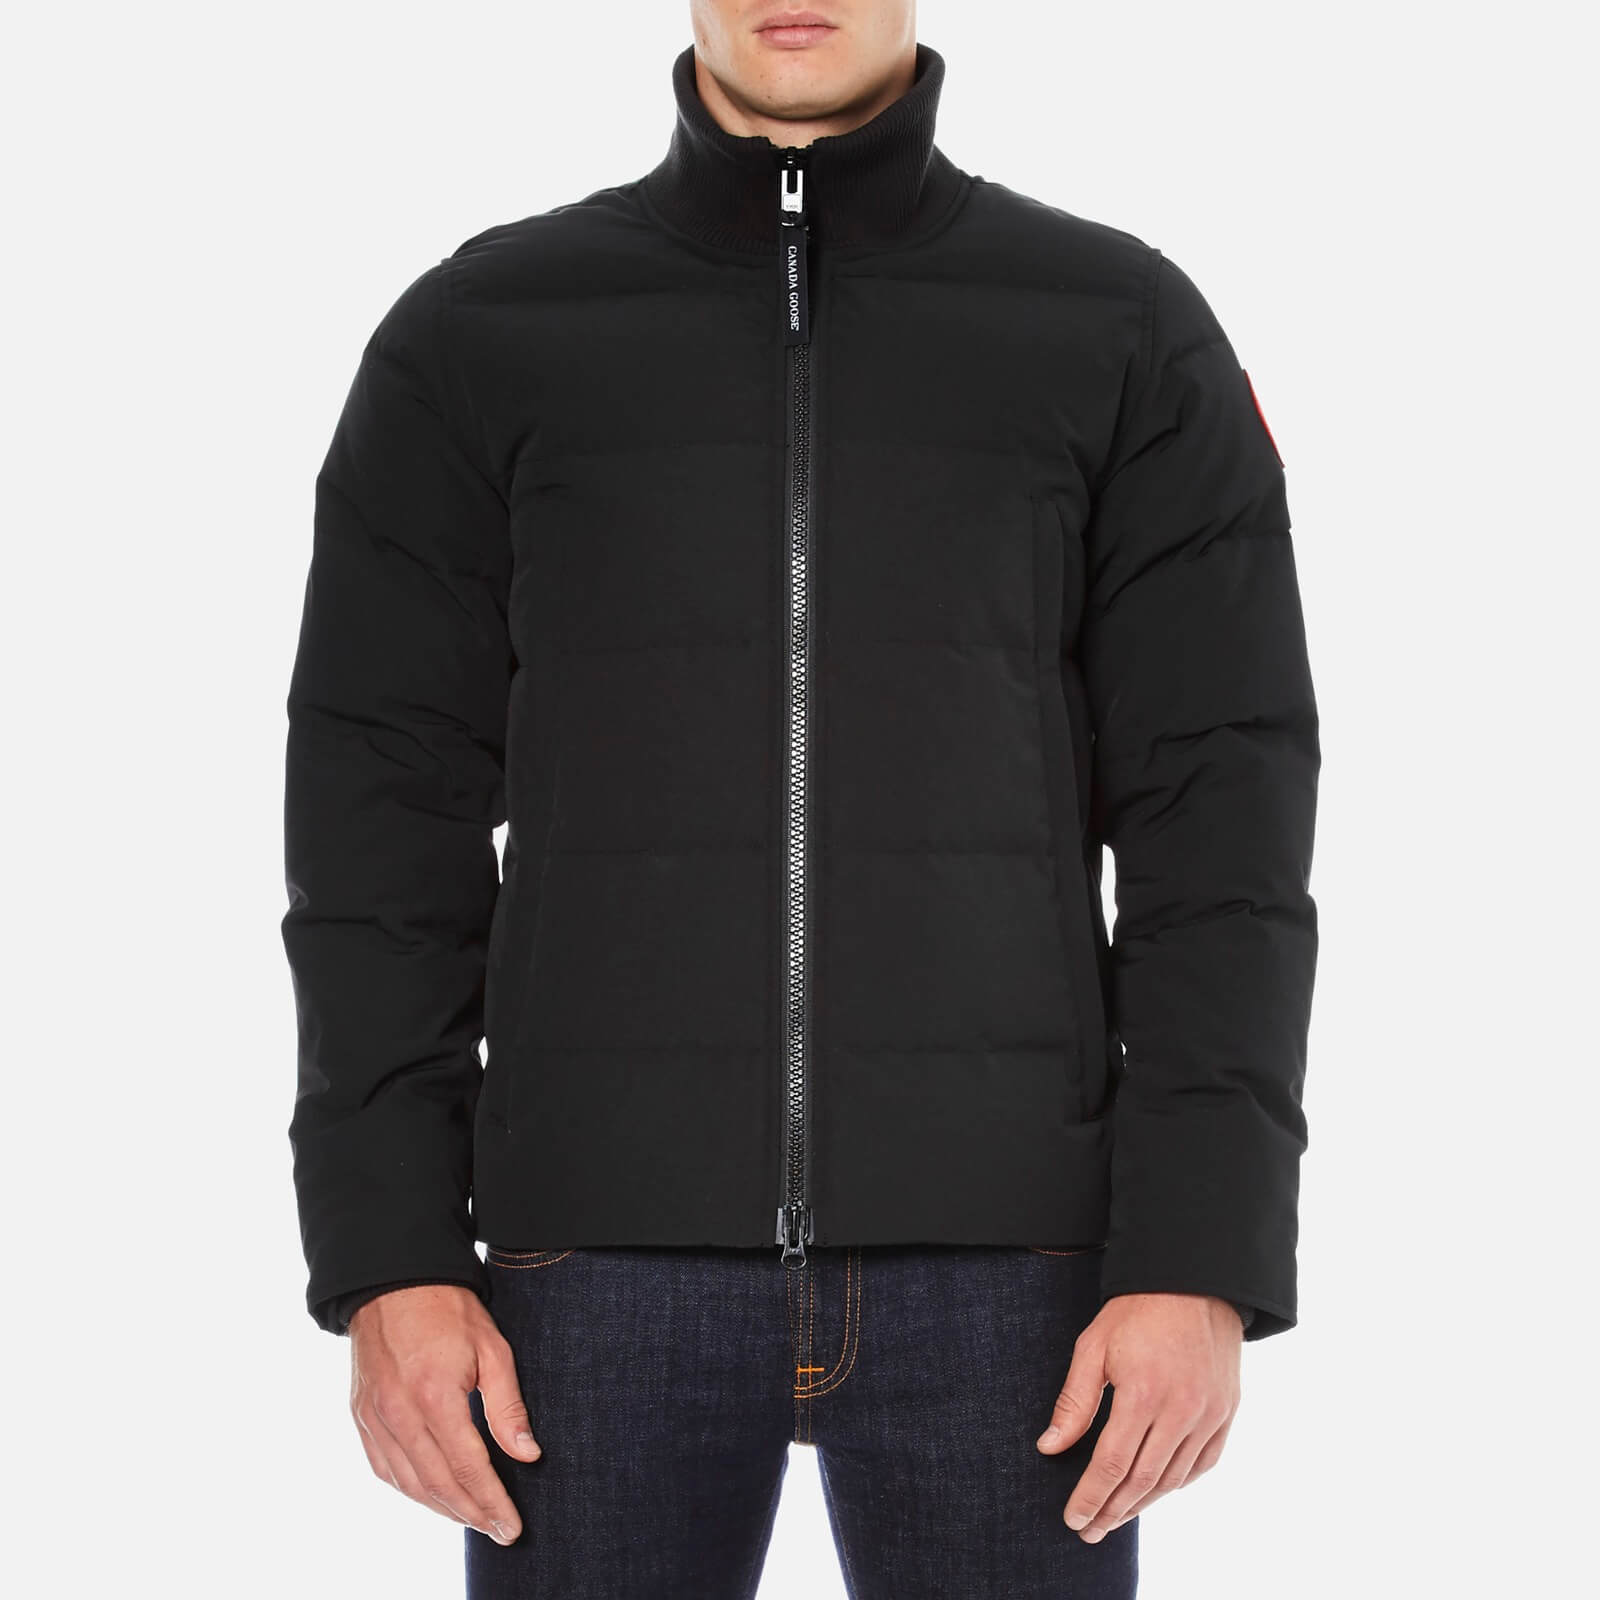 e9798f098 Canada Goose Men's Woolford Jacket - Black